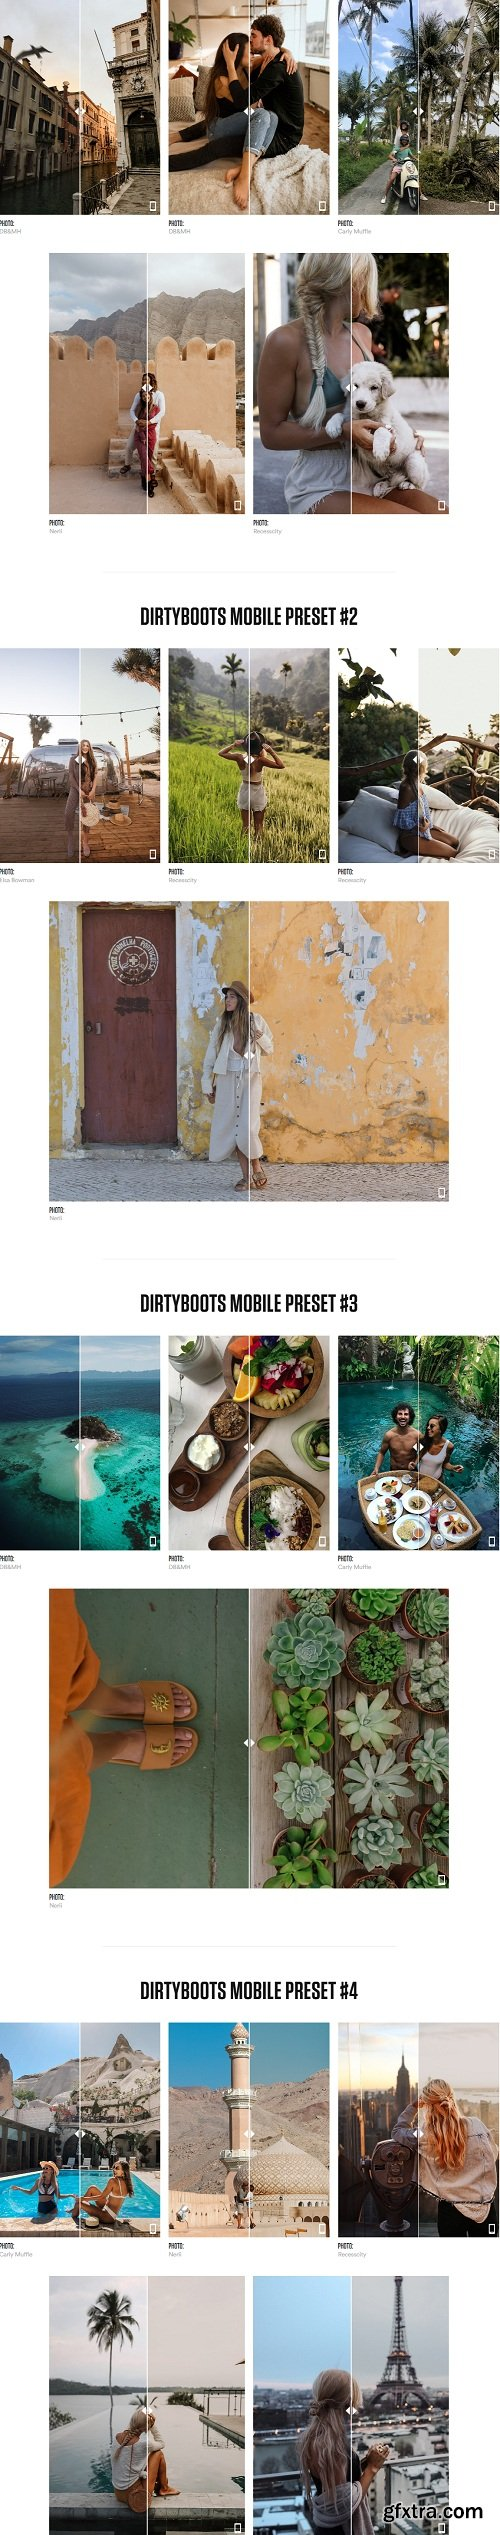 Dirtyboots Mobile Presets